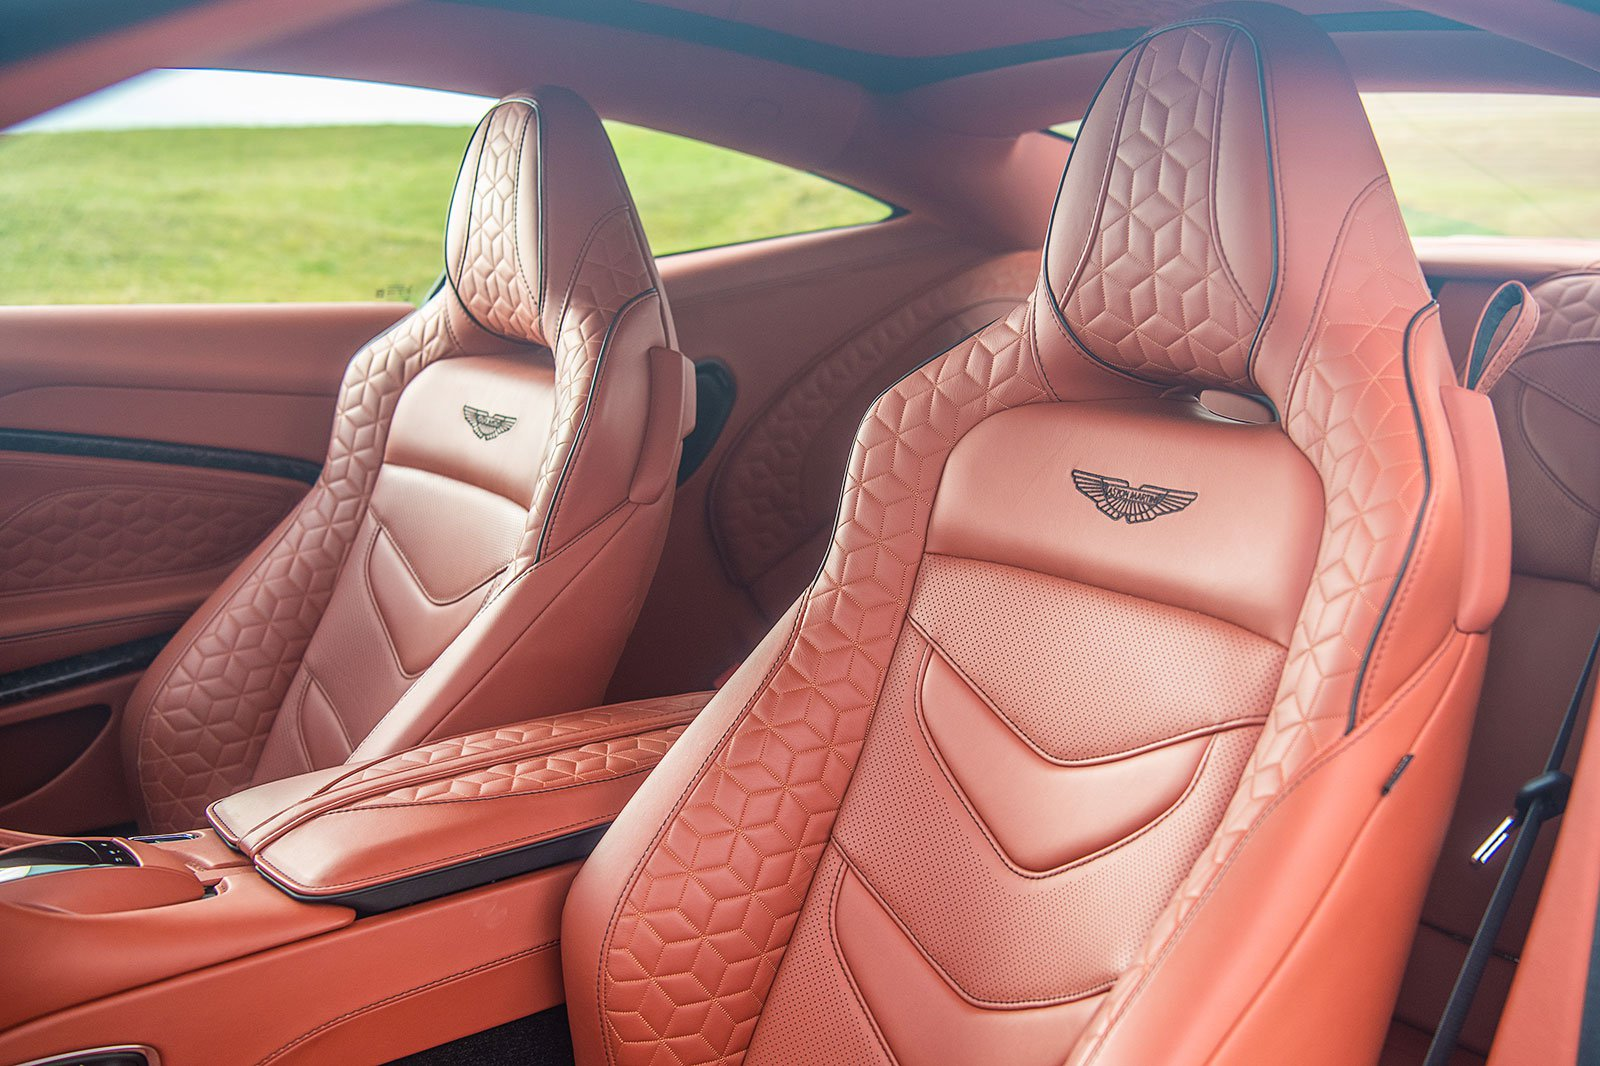 Aston Martin DBS Superleggera front seats